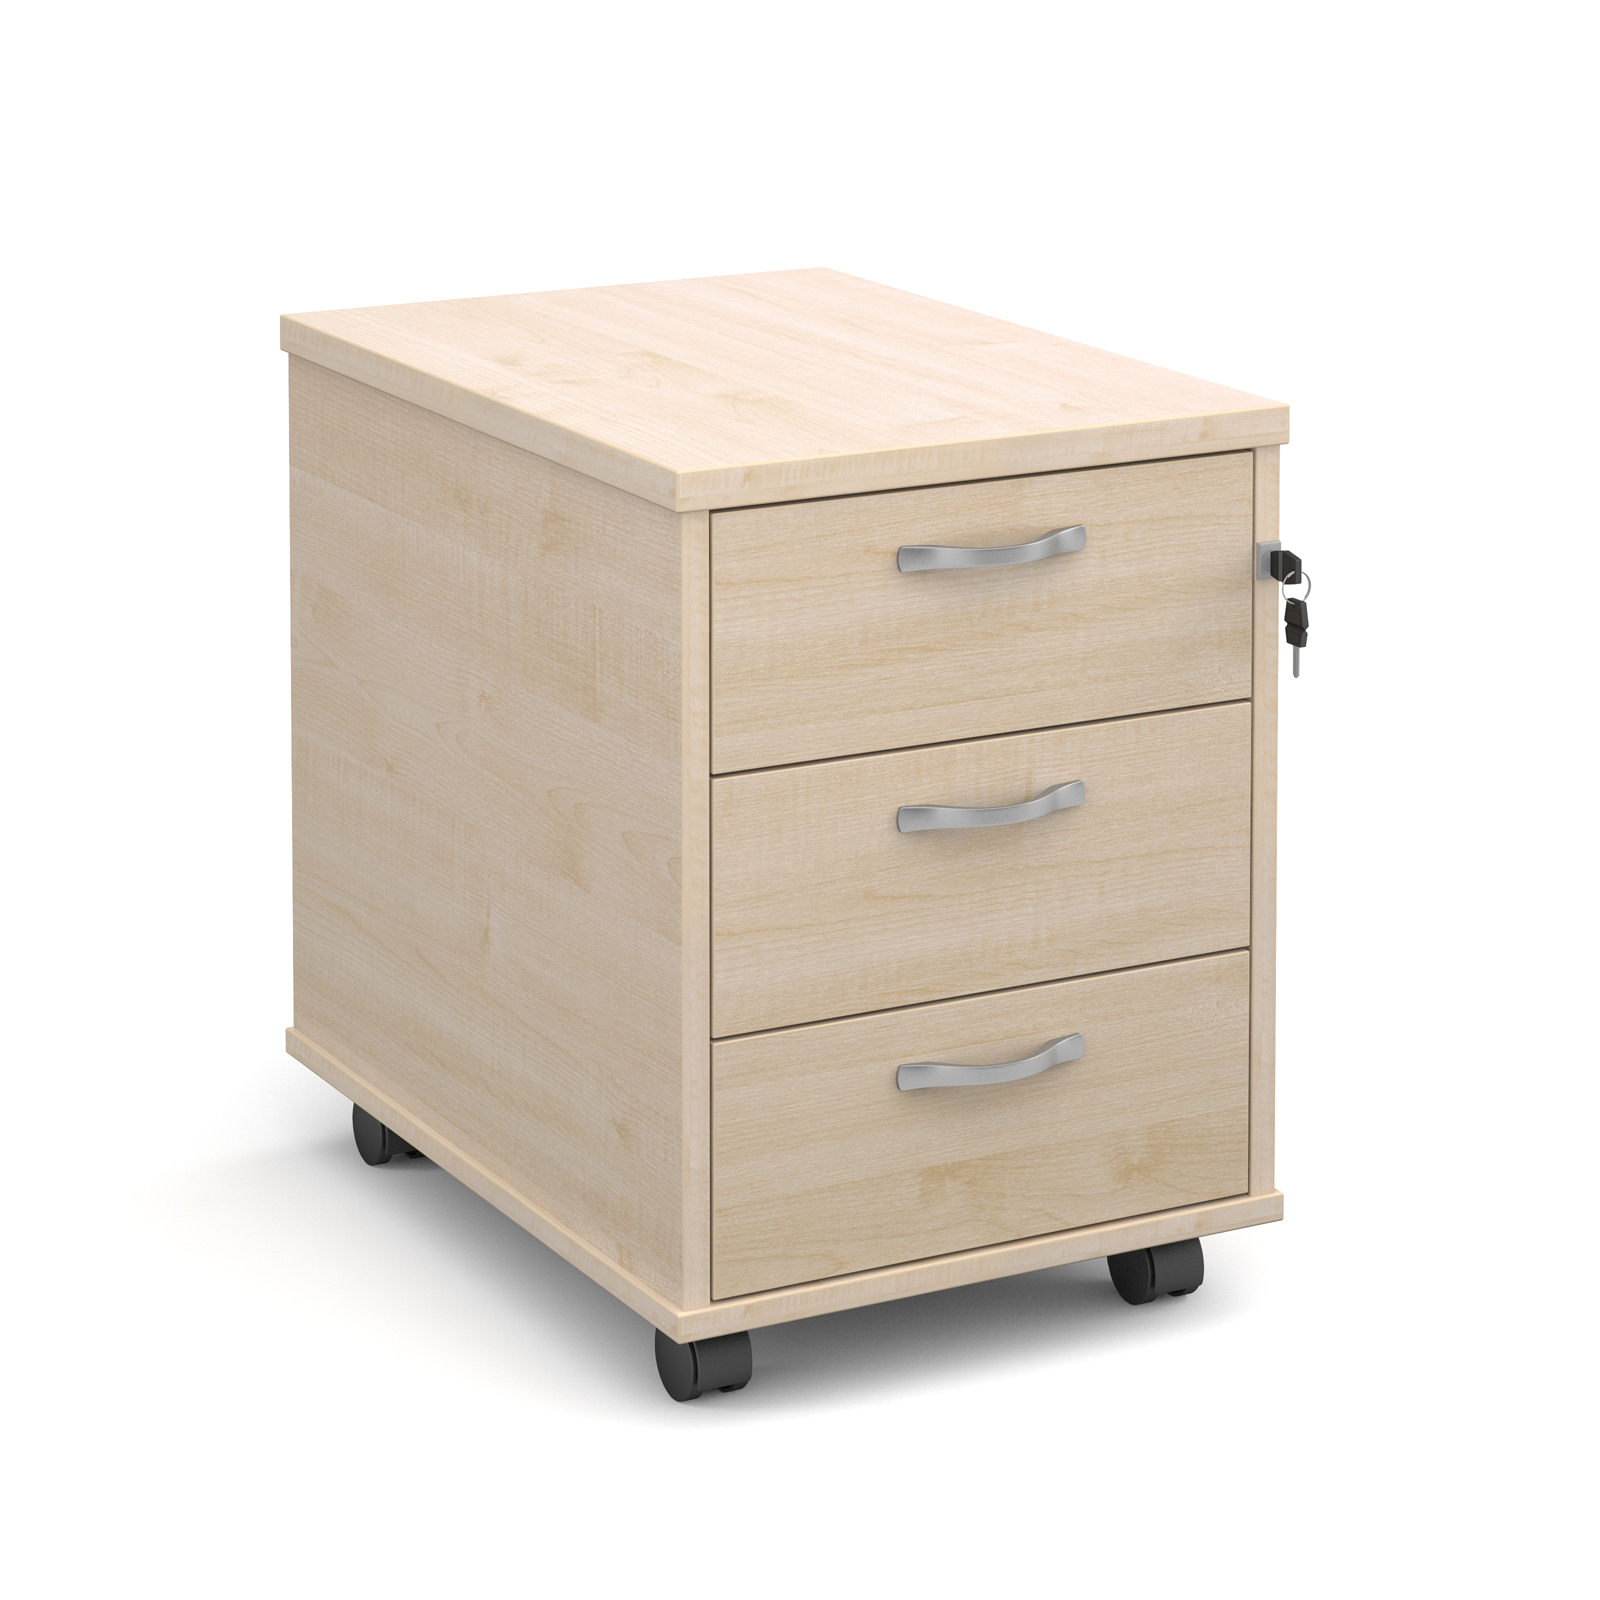 3 Drawer Mobile 3 drawer pedestal with silver handles 600mm deep - maple